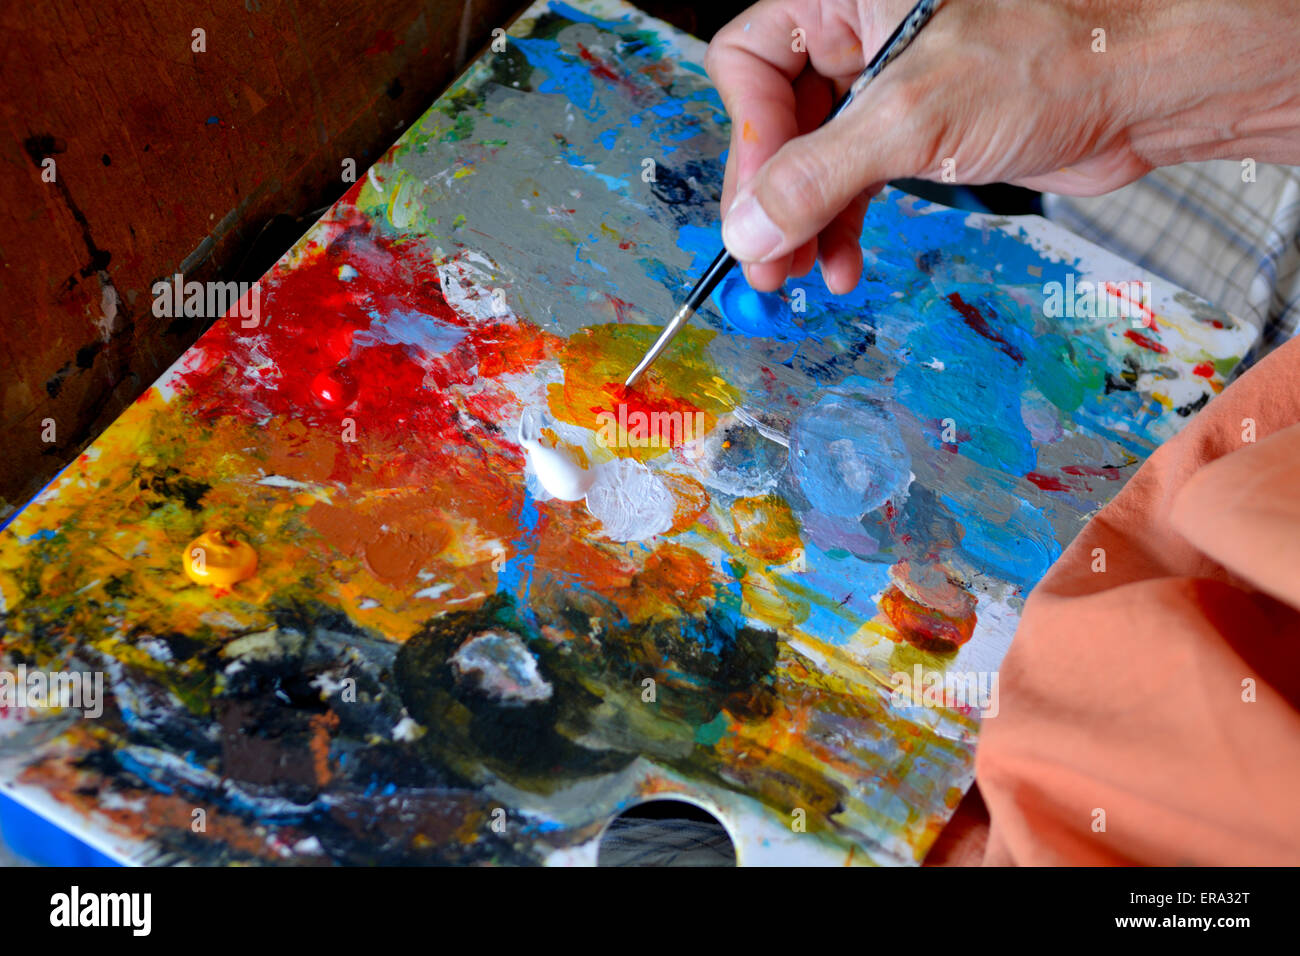 Artists paint pallet board with colourful oil paints - Stock Image